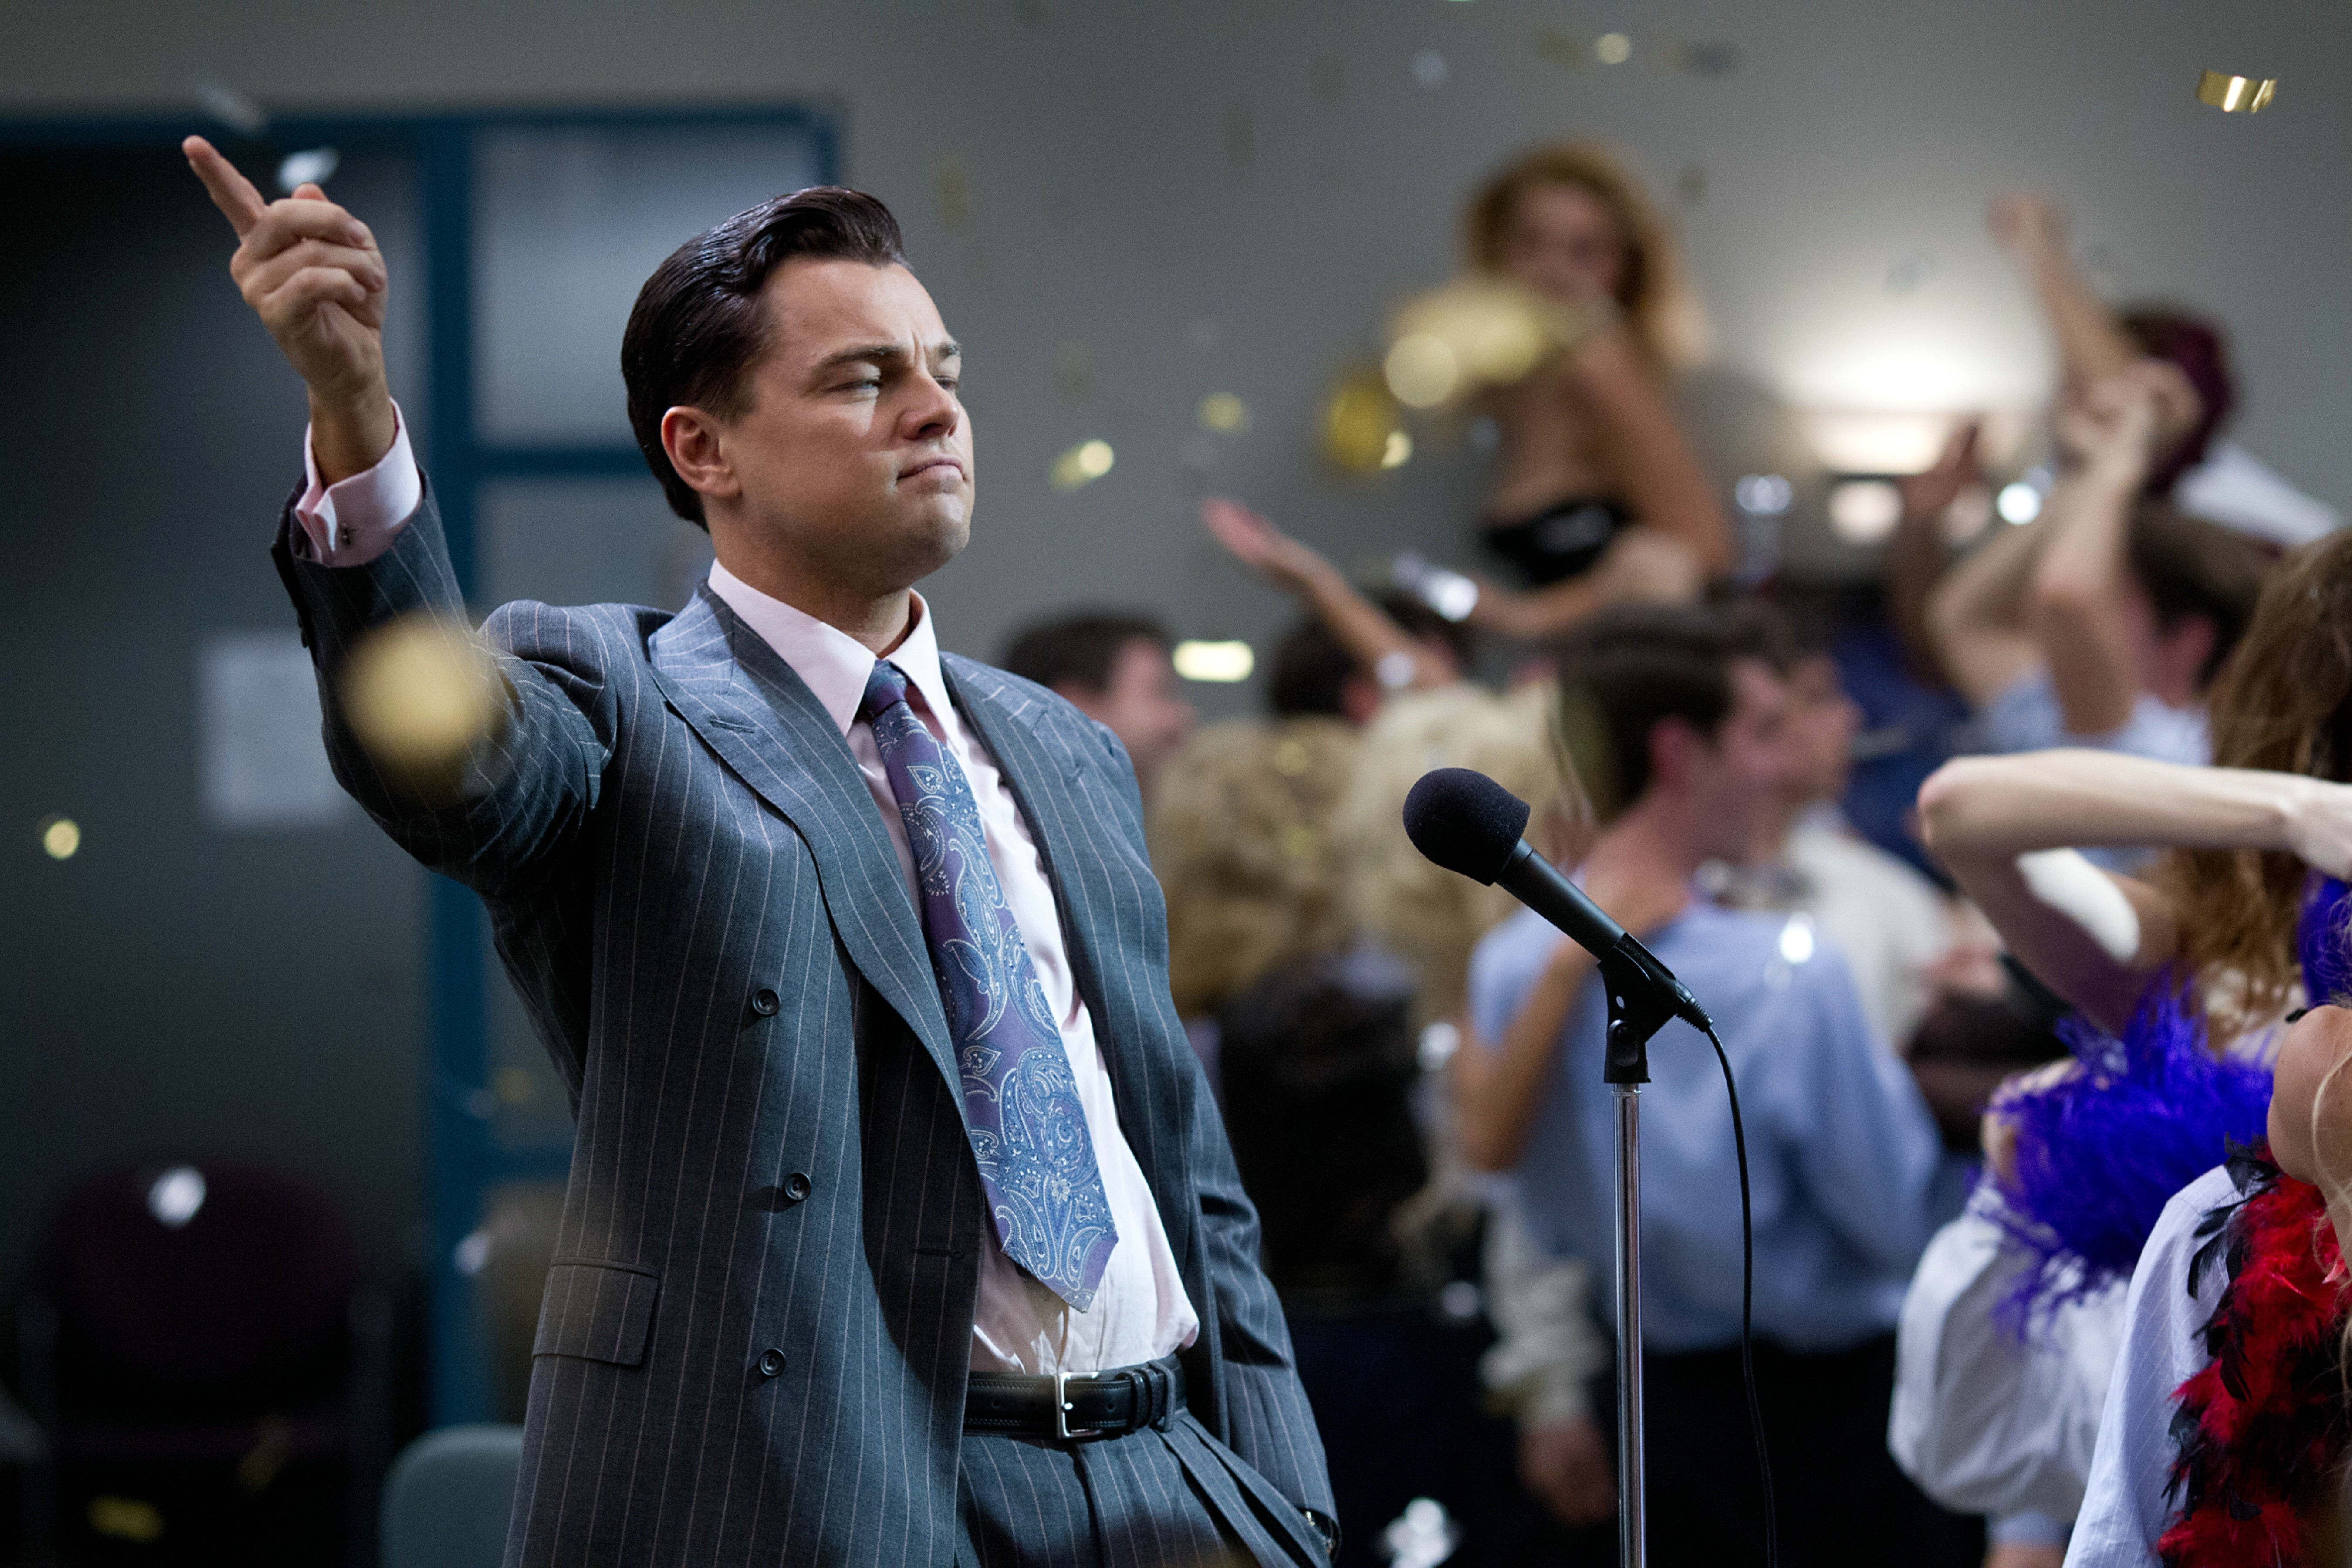 Nominated for 5 Academy Awards® Including Best Picture, Best Director and Best Actor, THE WOLF OF WALL STREET Debuts on Blu-ray™ Combo Pack March 25, 2014 and on Digital HD March 18 (Photo: Business Wire)